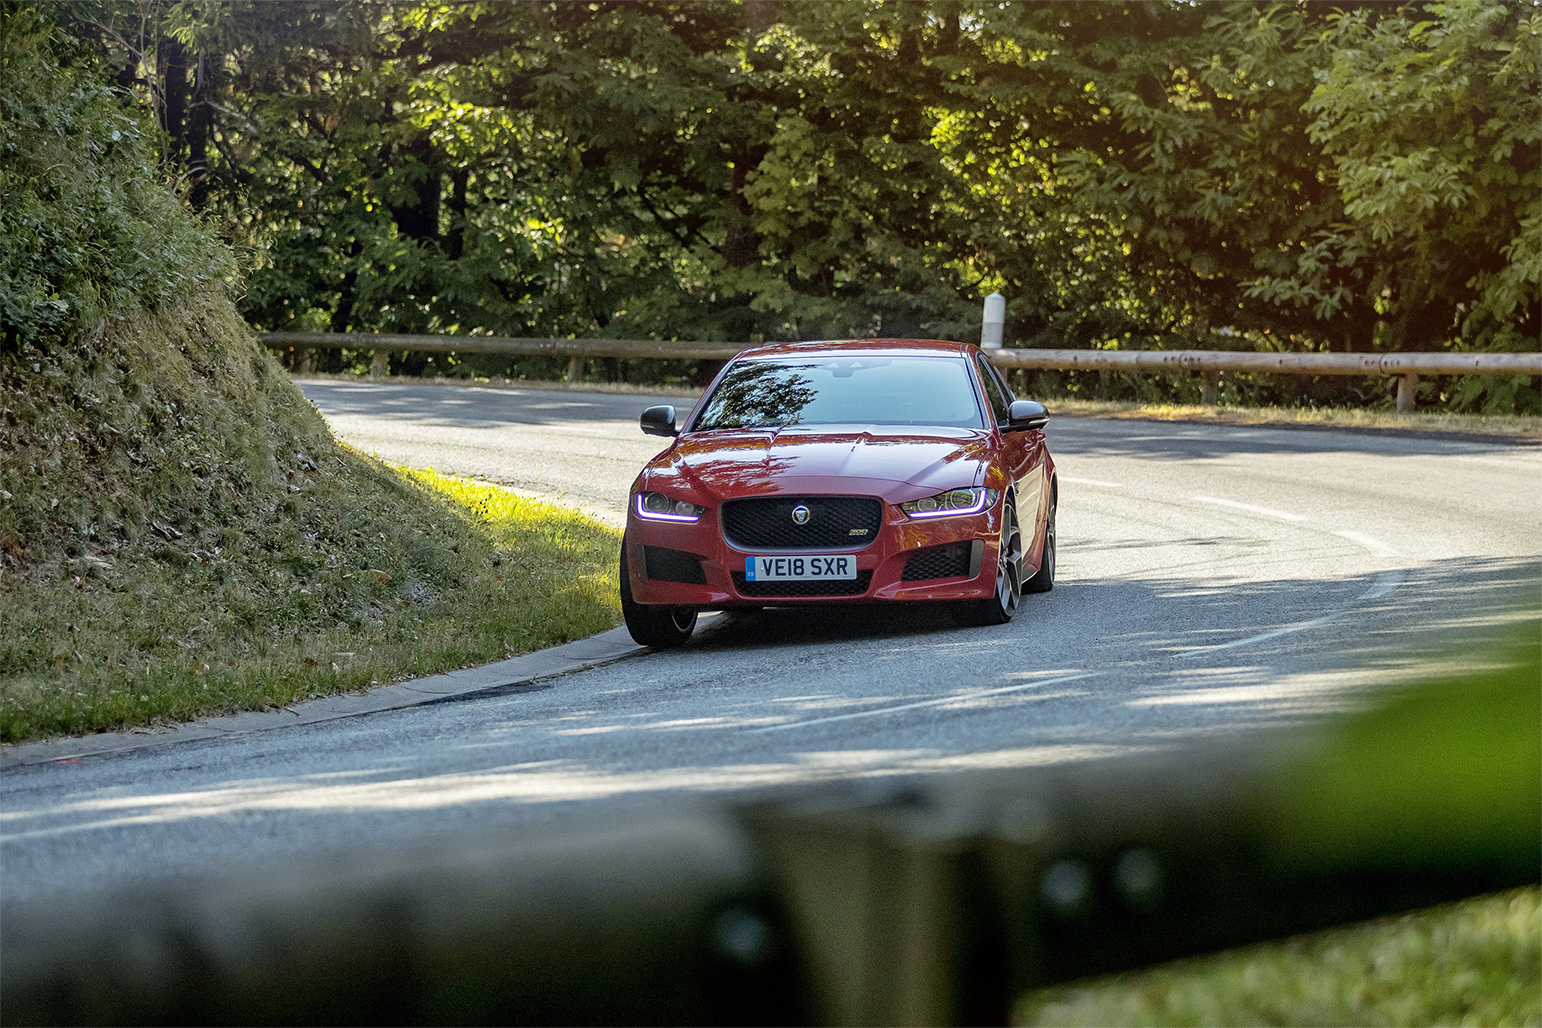 TrackWorthy - 2019 Jaguar XE 300 SPORT at Forgotten GP Circuit (3)